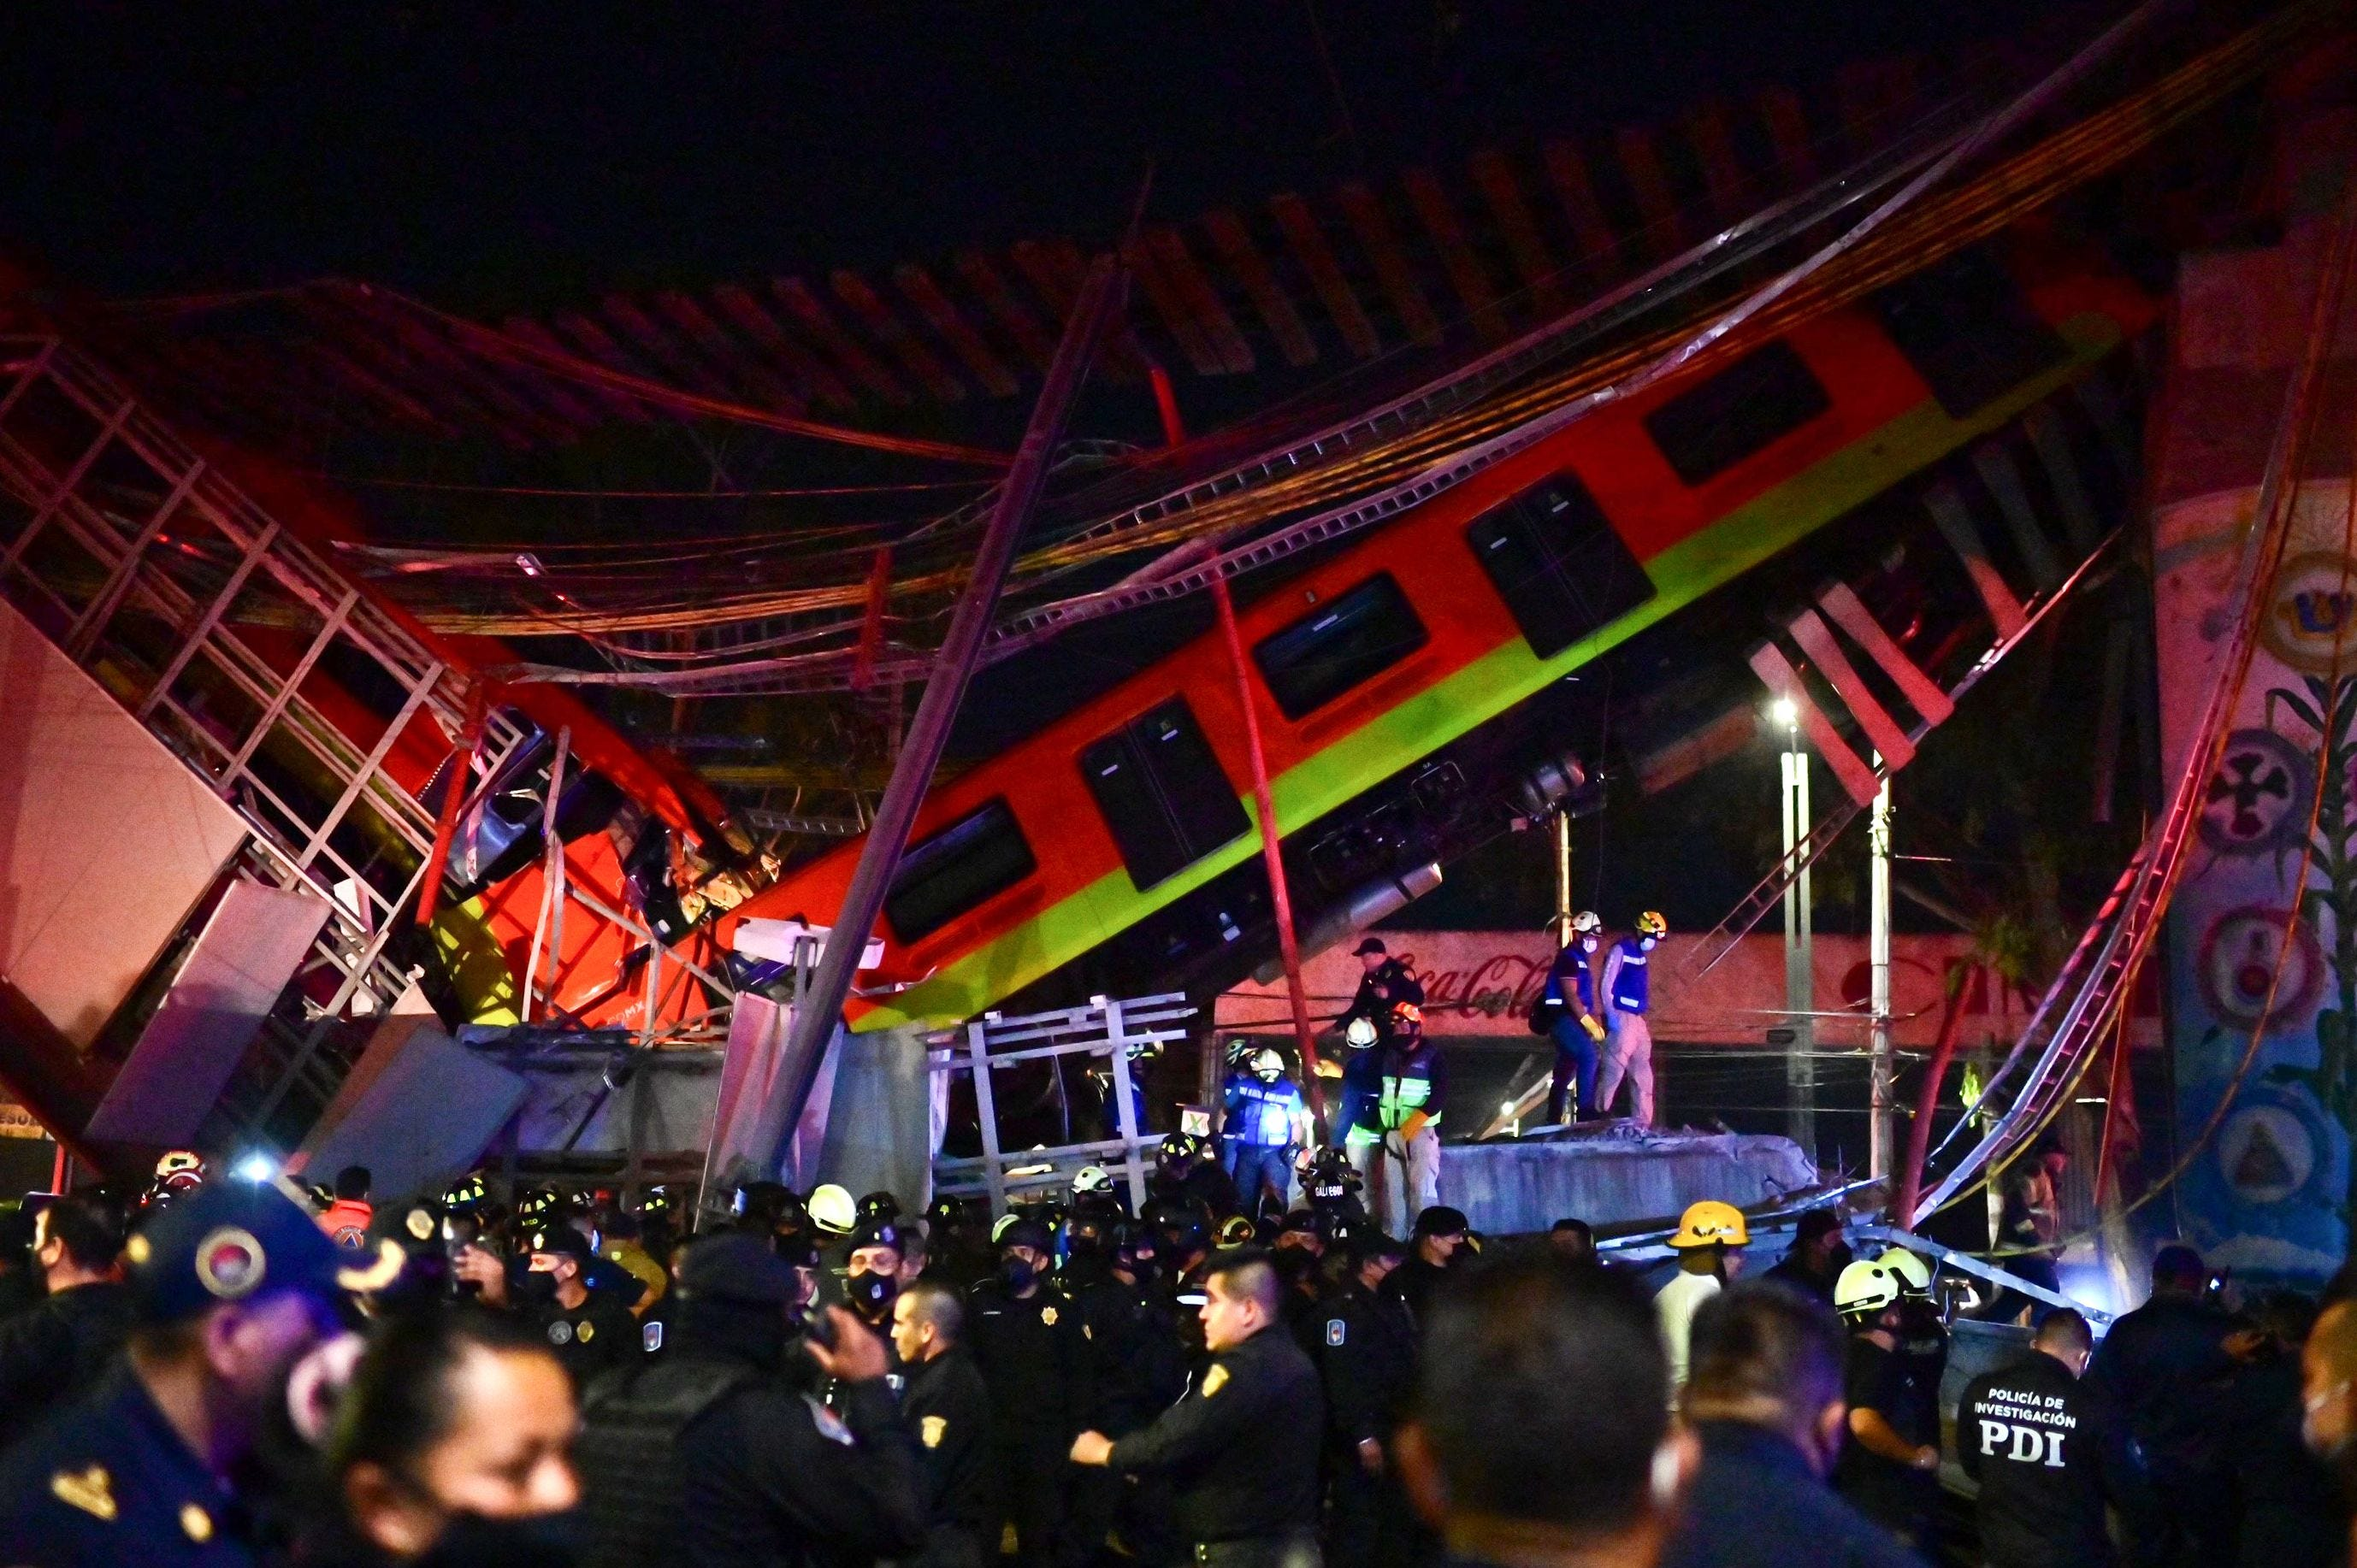 Mexico City metro overpass collapses onto road, killing at least 13 and injuring 70, authorities say